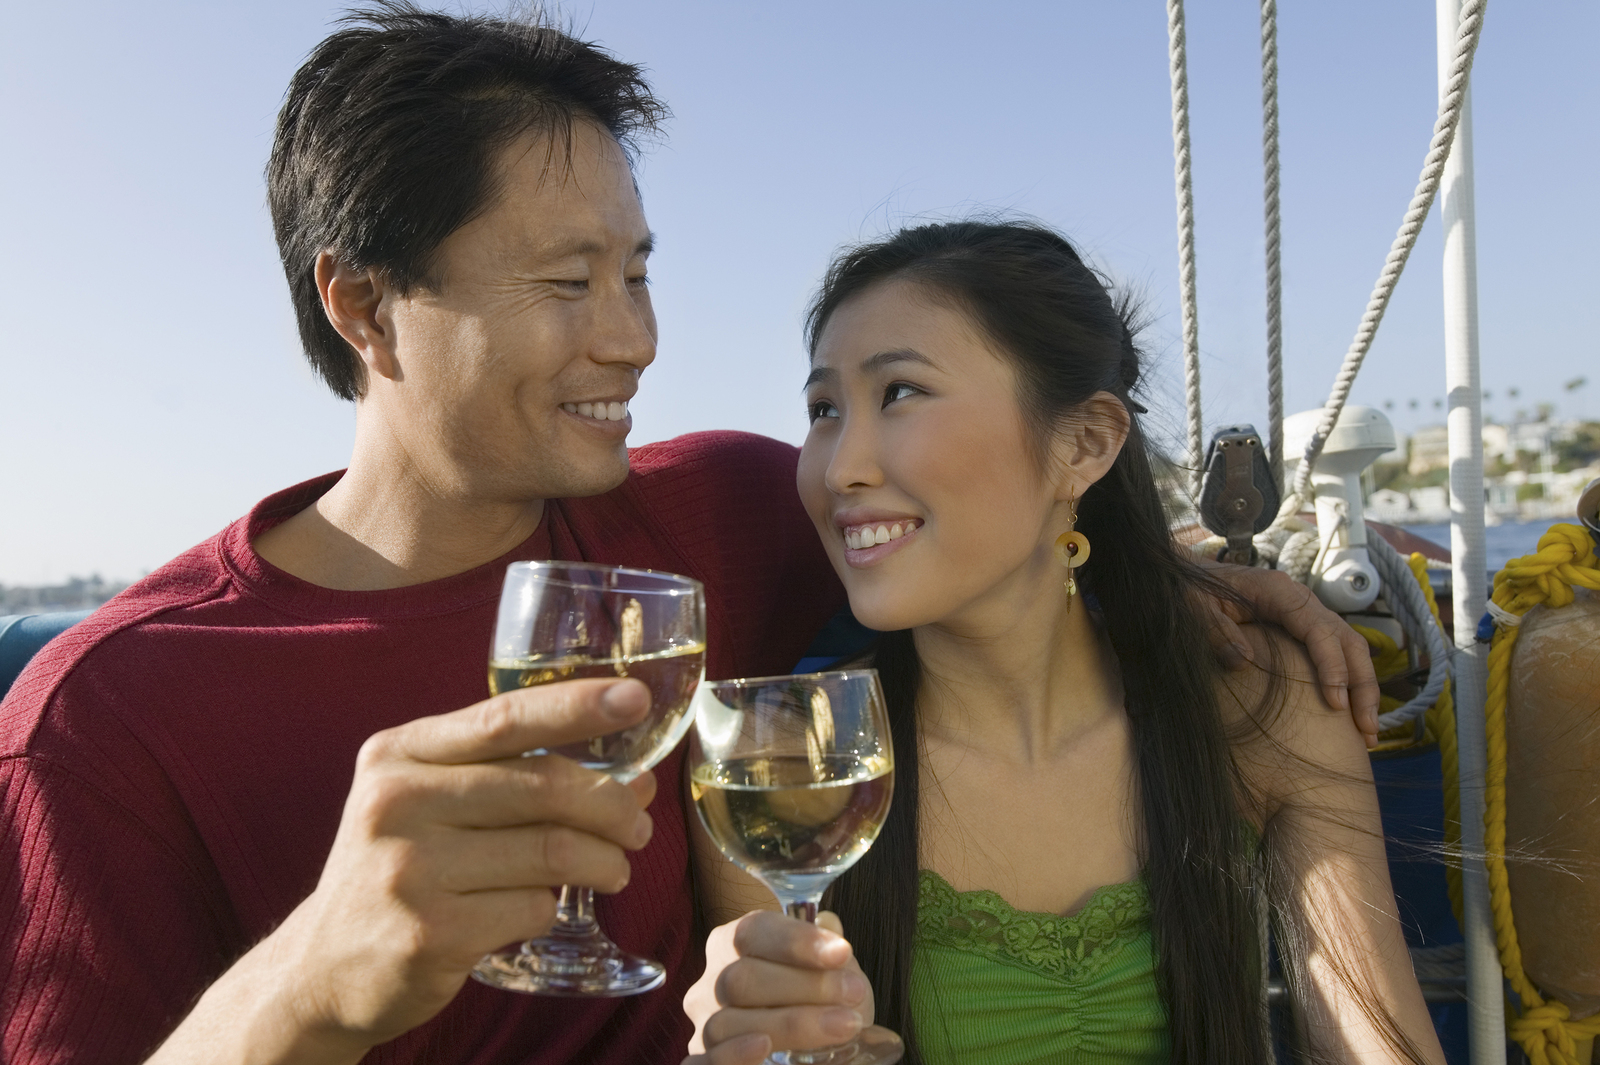 bigstock-Smiling-couple-toasting-wine-g-48927368